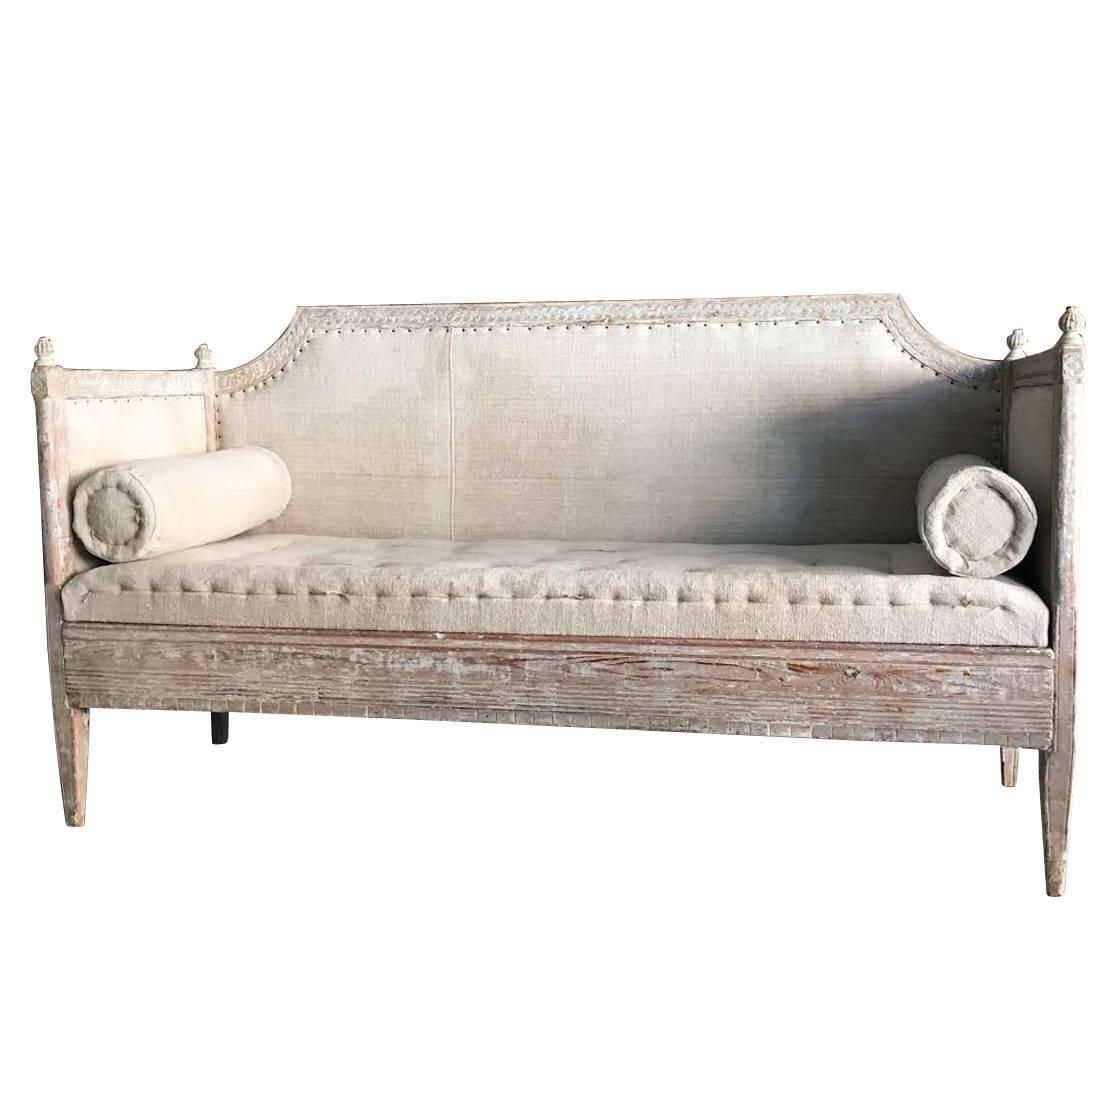 Swedish Early Gustavian Period Sofa In Original Paint 18th Century Antique At 1stdibs Painted Sofa Period Sofas Gustavian